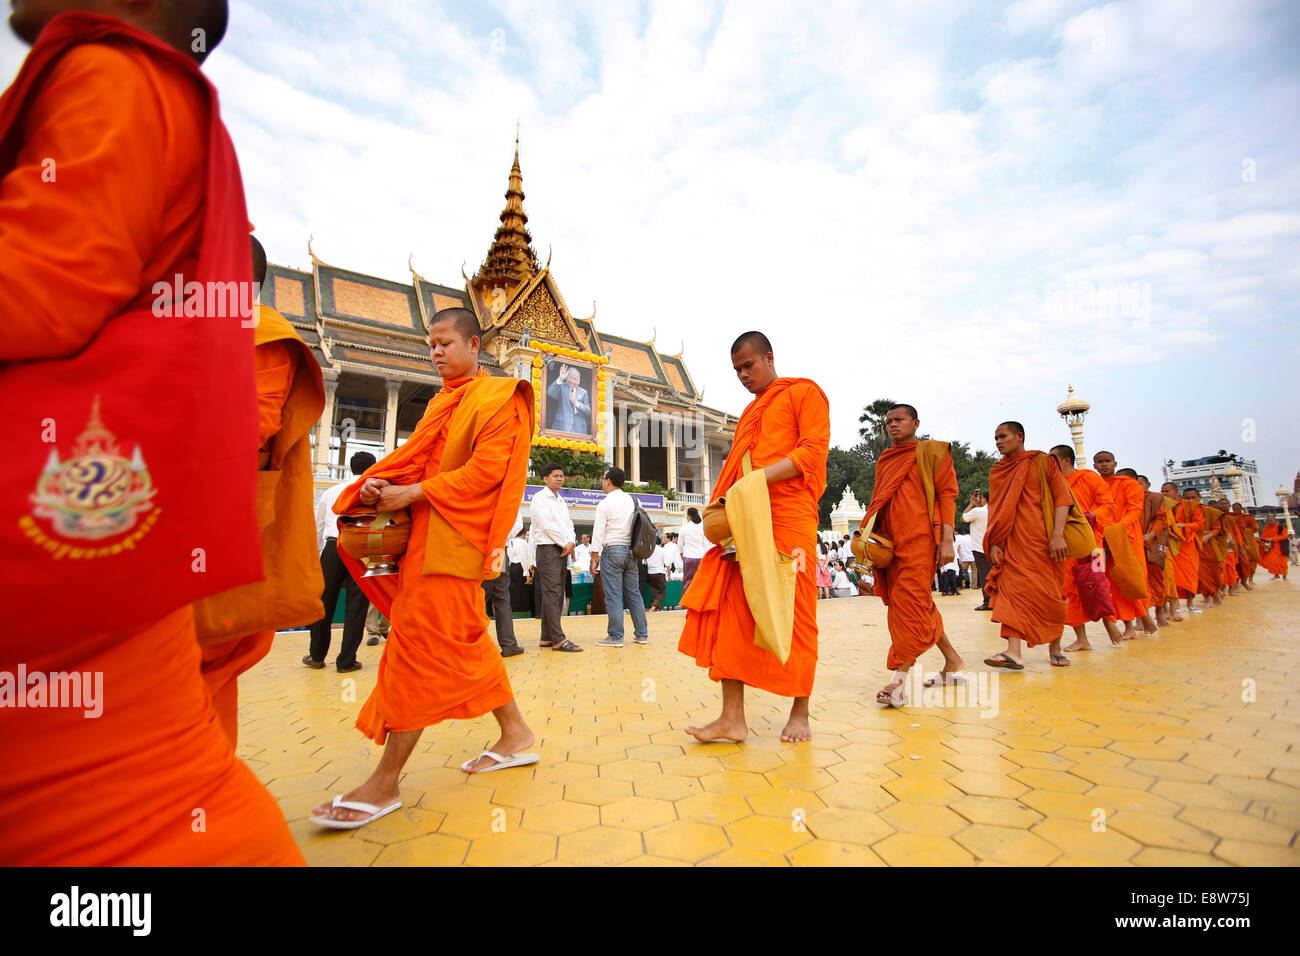 Phnom Penh, Cambodia. 15th Oct, 2014. Buddhist monks walk in front of the Royal Palace in Phnom Penh Oct. 15, 2014. - Stock Image